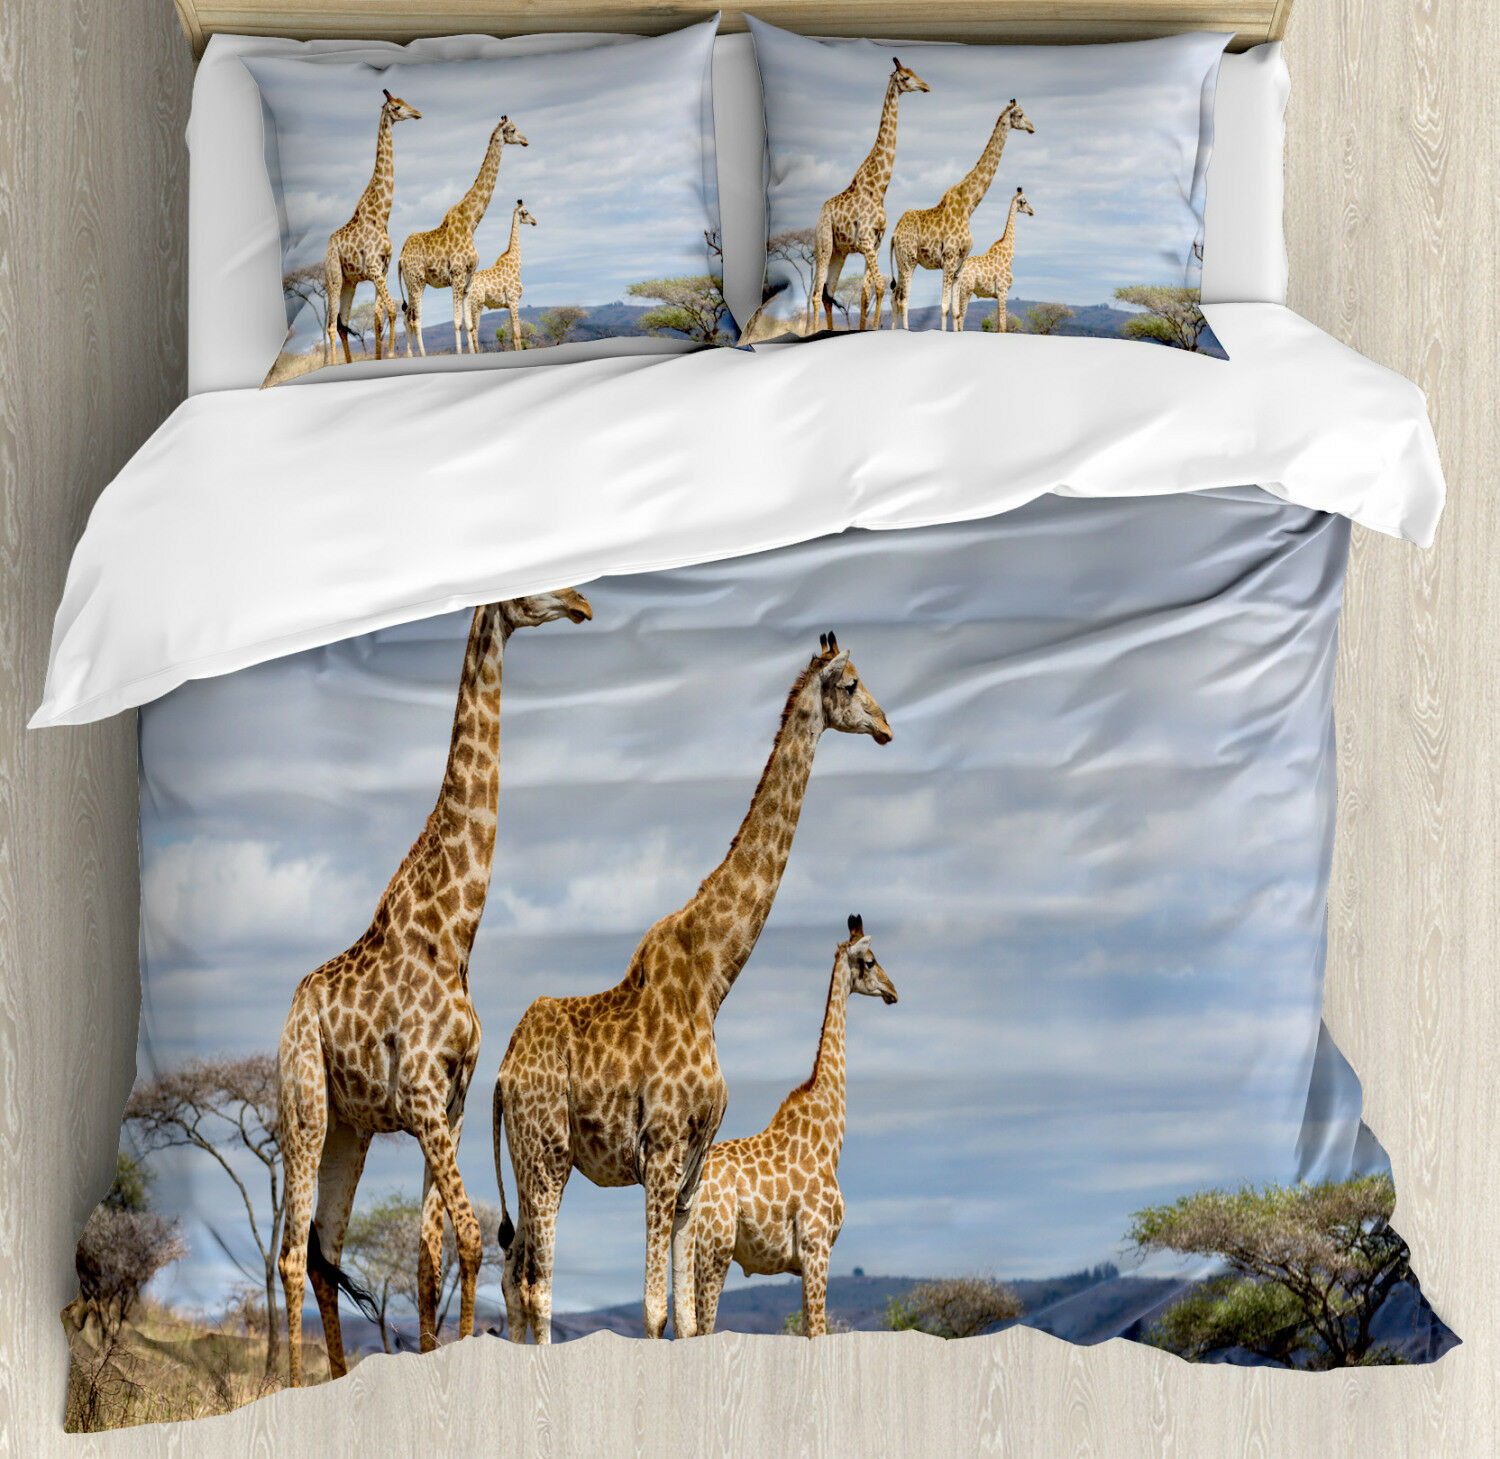 Wildlife Duvet Cover Set with Pillow Shams African Giraffe Family Print